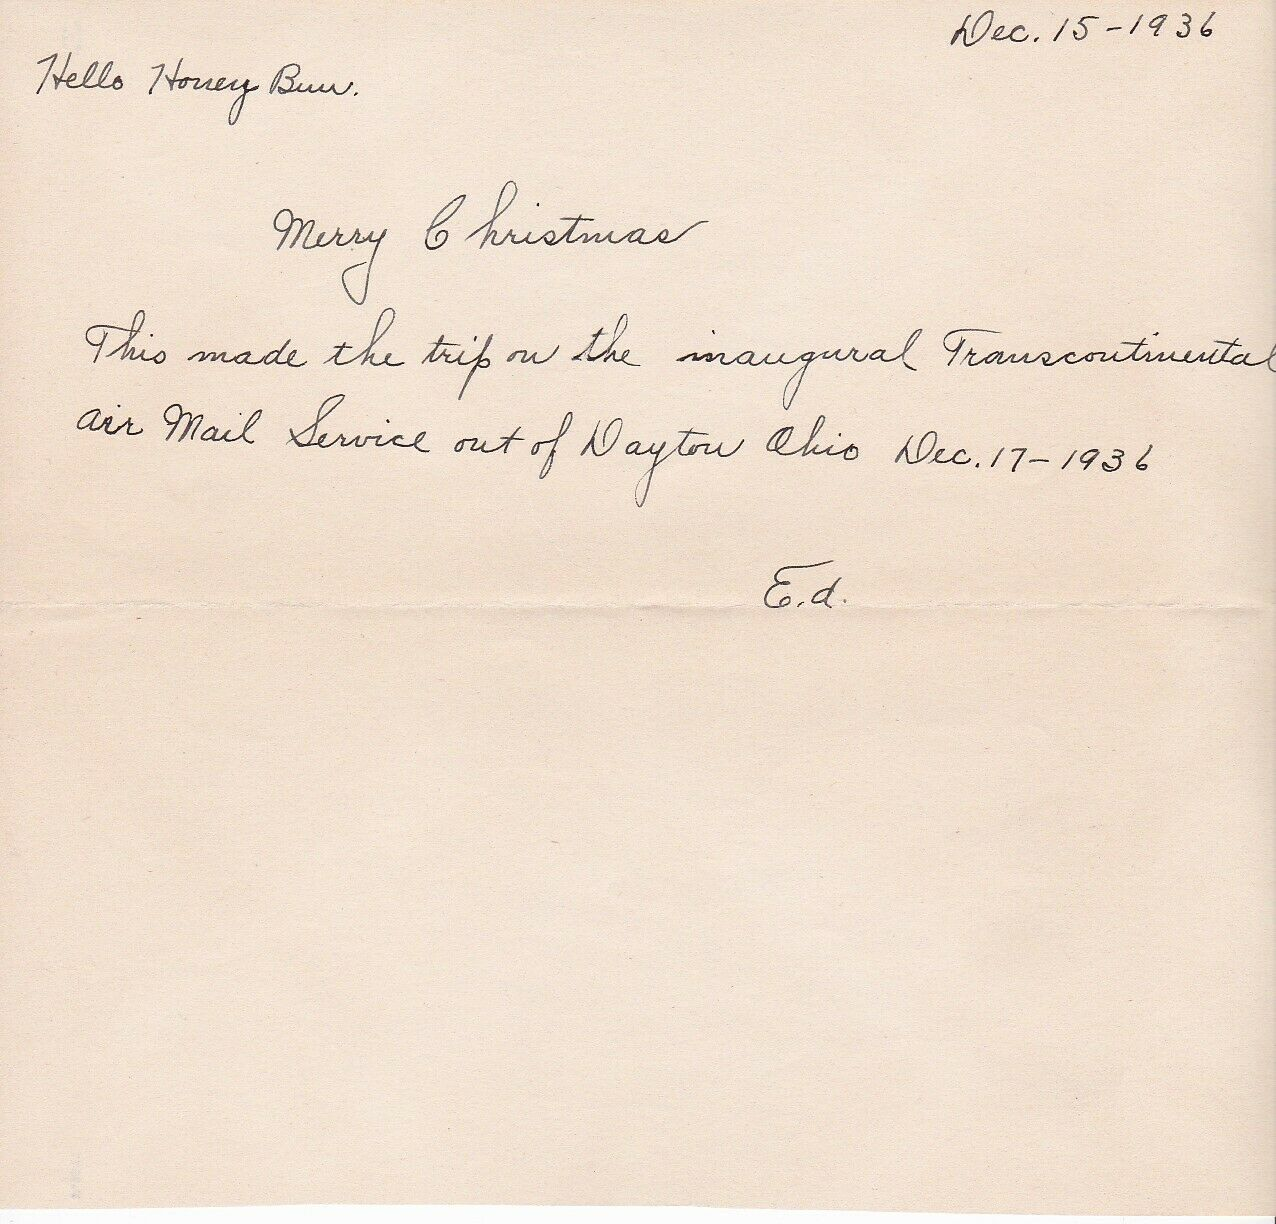 33rd ANNIVERSARY OF WRIGHT BROTHERS FIRST FLIGHT FLOWN MAIL DAYTON OH 12/17/1936 image 3